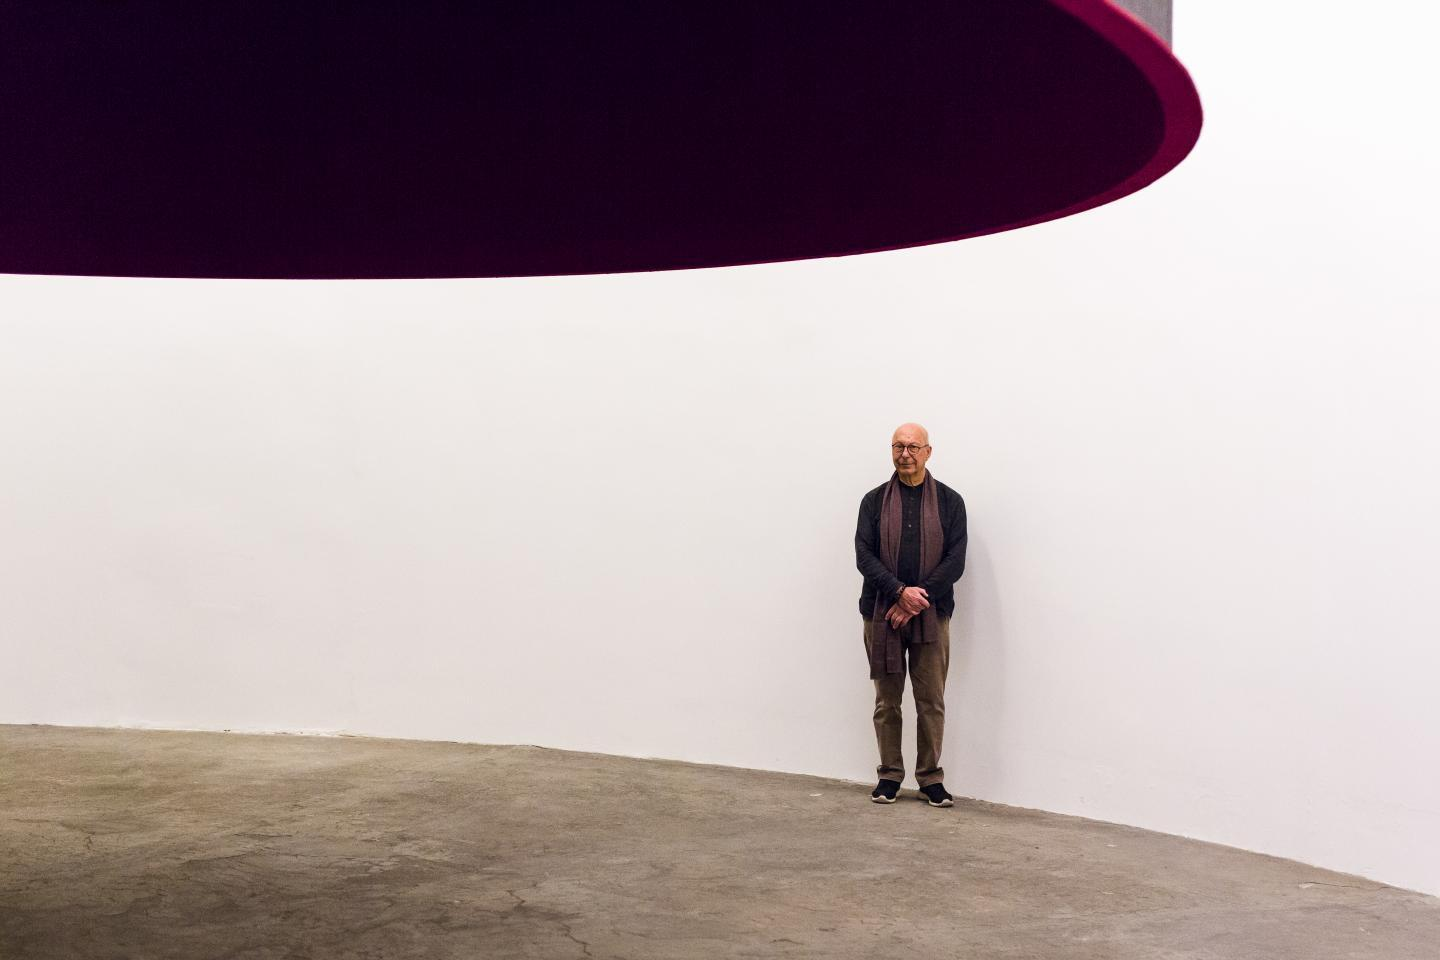 """Vervoordt with an Anish Kapoor installation, """"At the Edge of the World,"""" in Vervoordt's eponymous gallery in Belgium."""